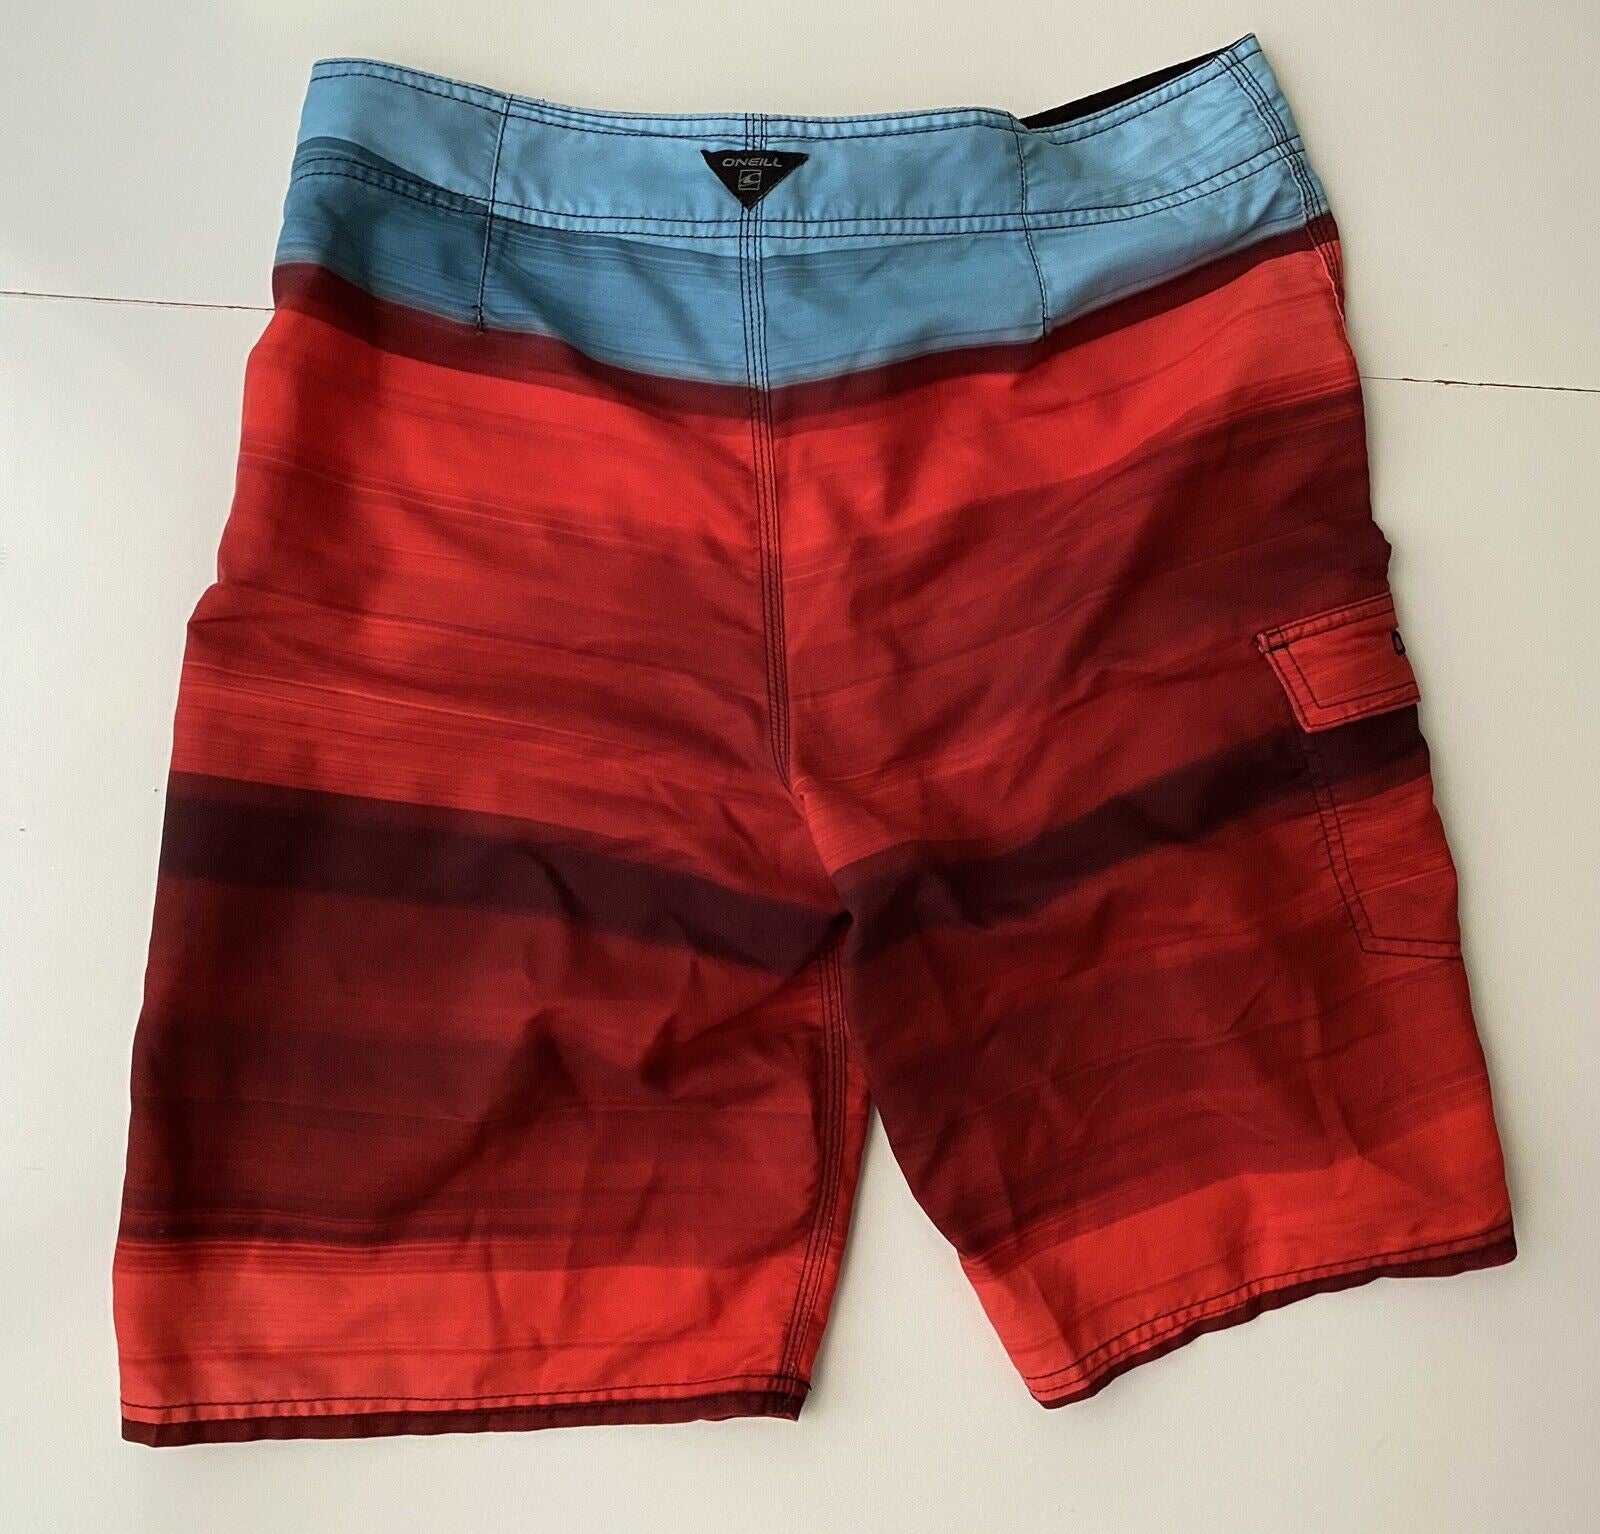 O'Neill Men's Red/Blue Shorts Size 33 US